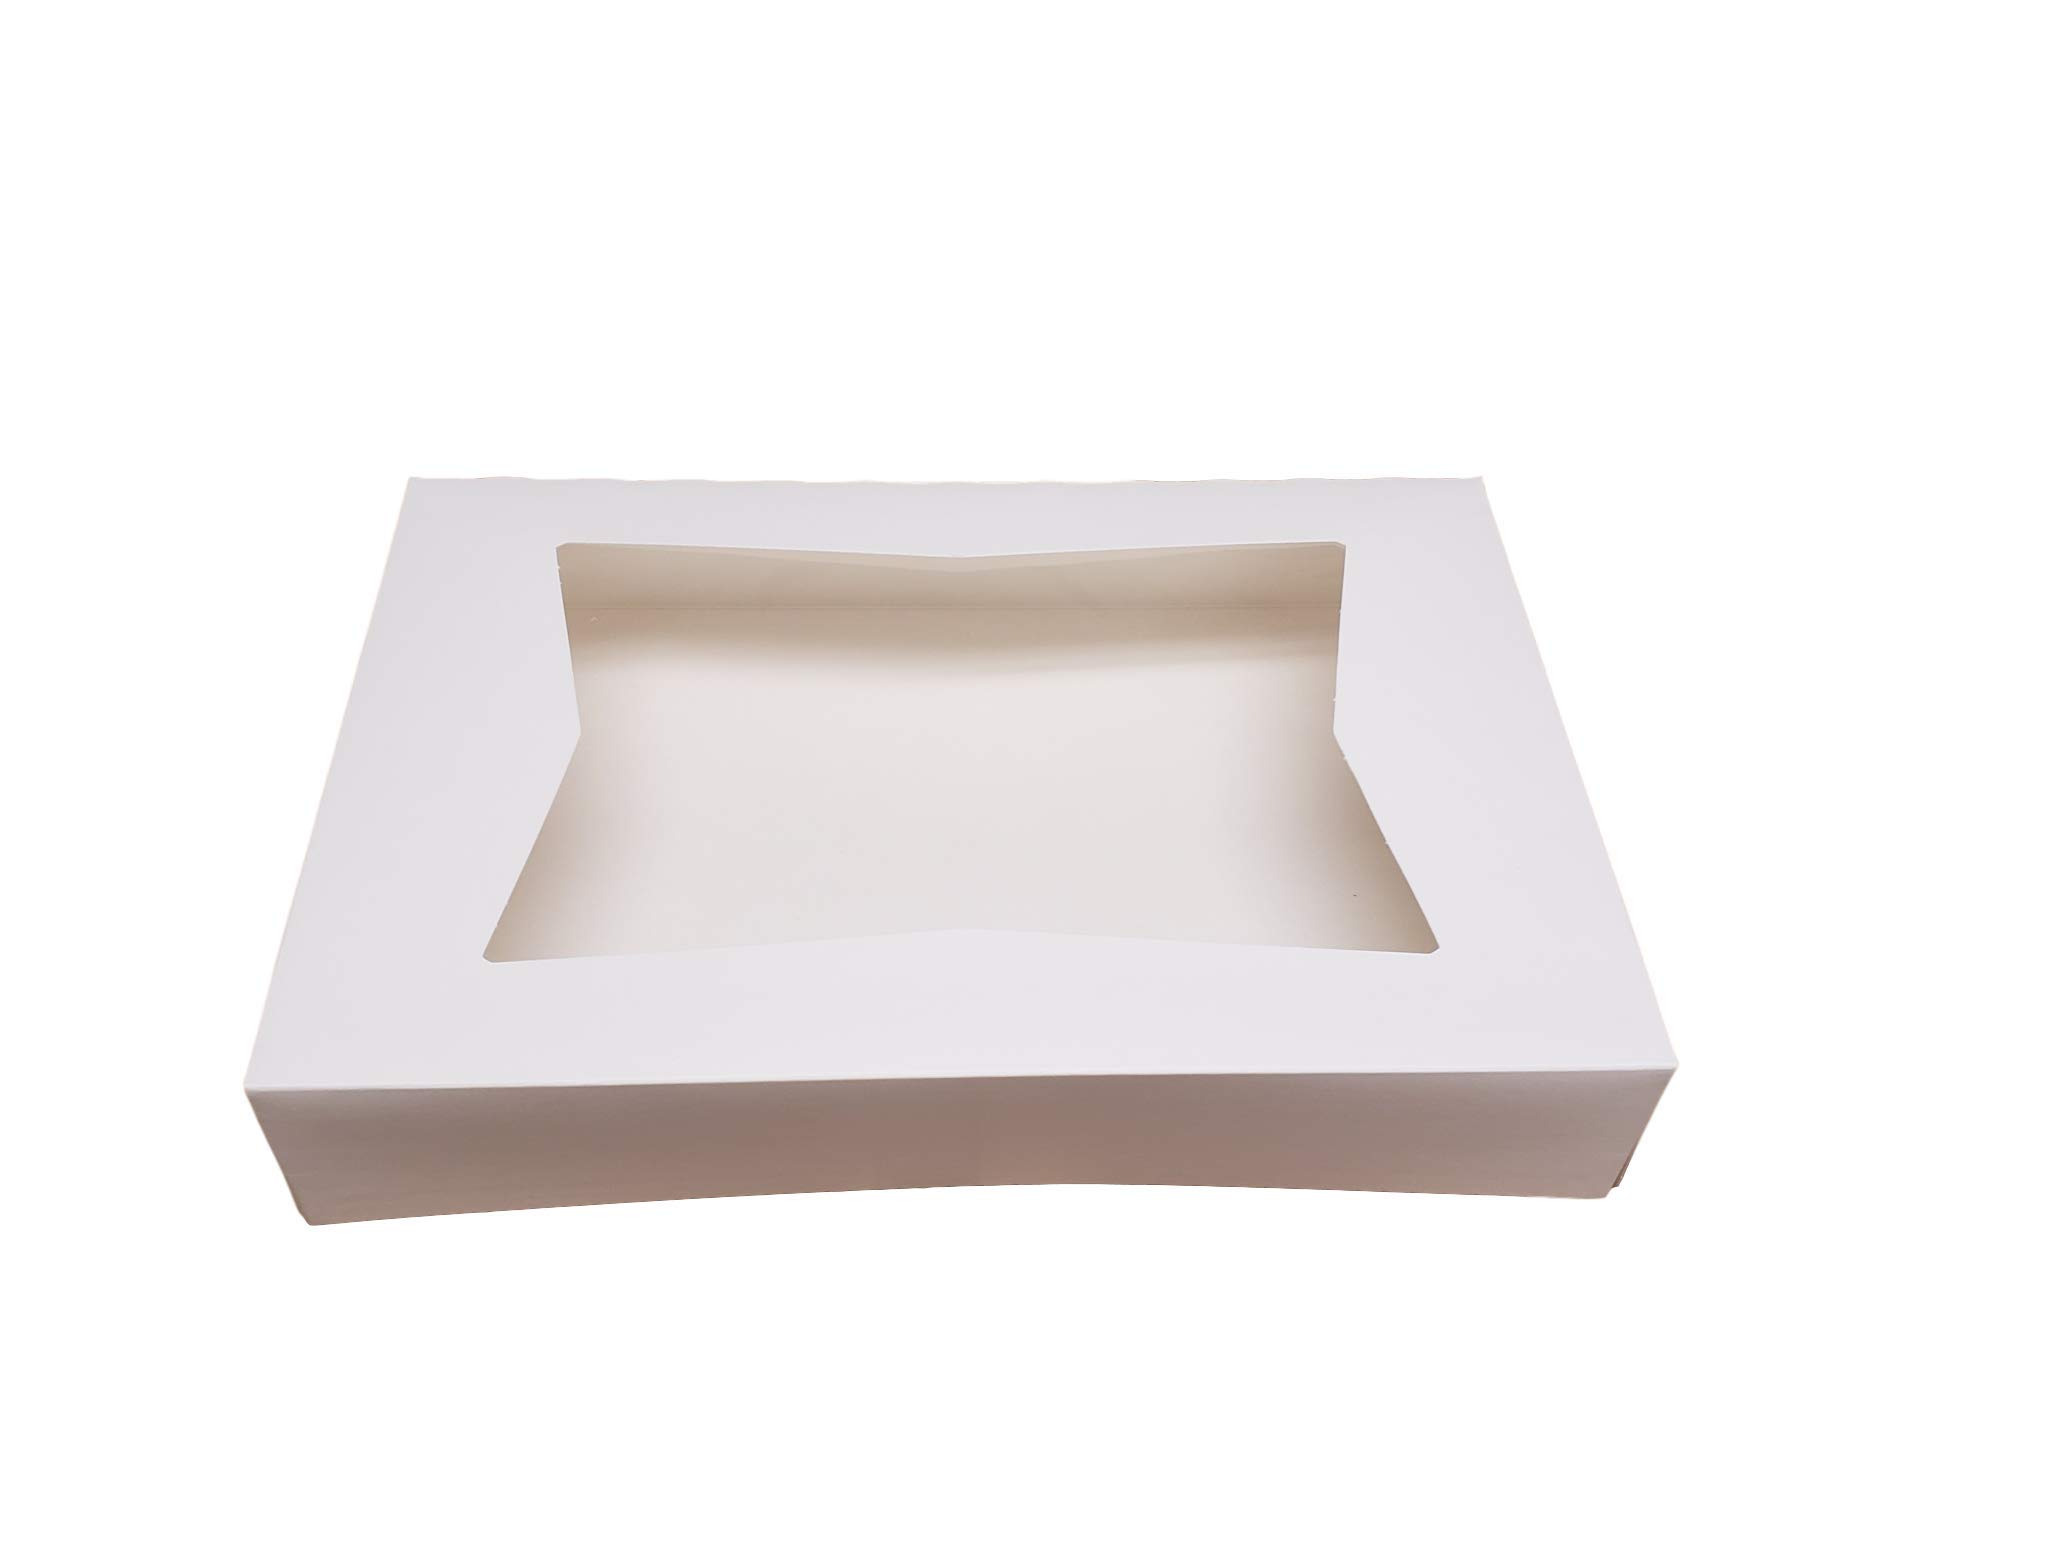 12'' Length x 8'' Width x 2.25'' Height White Paperboard Auto-Popup Donut Bakery Box with Window by MT Products (Pack of 15) by MT Products